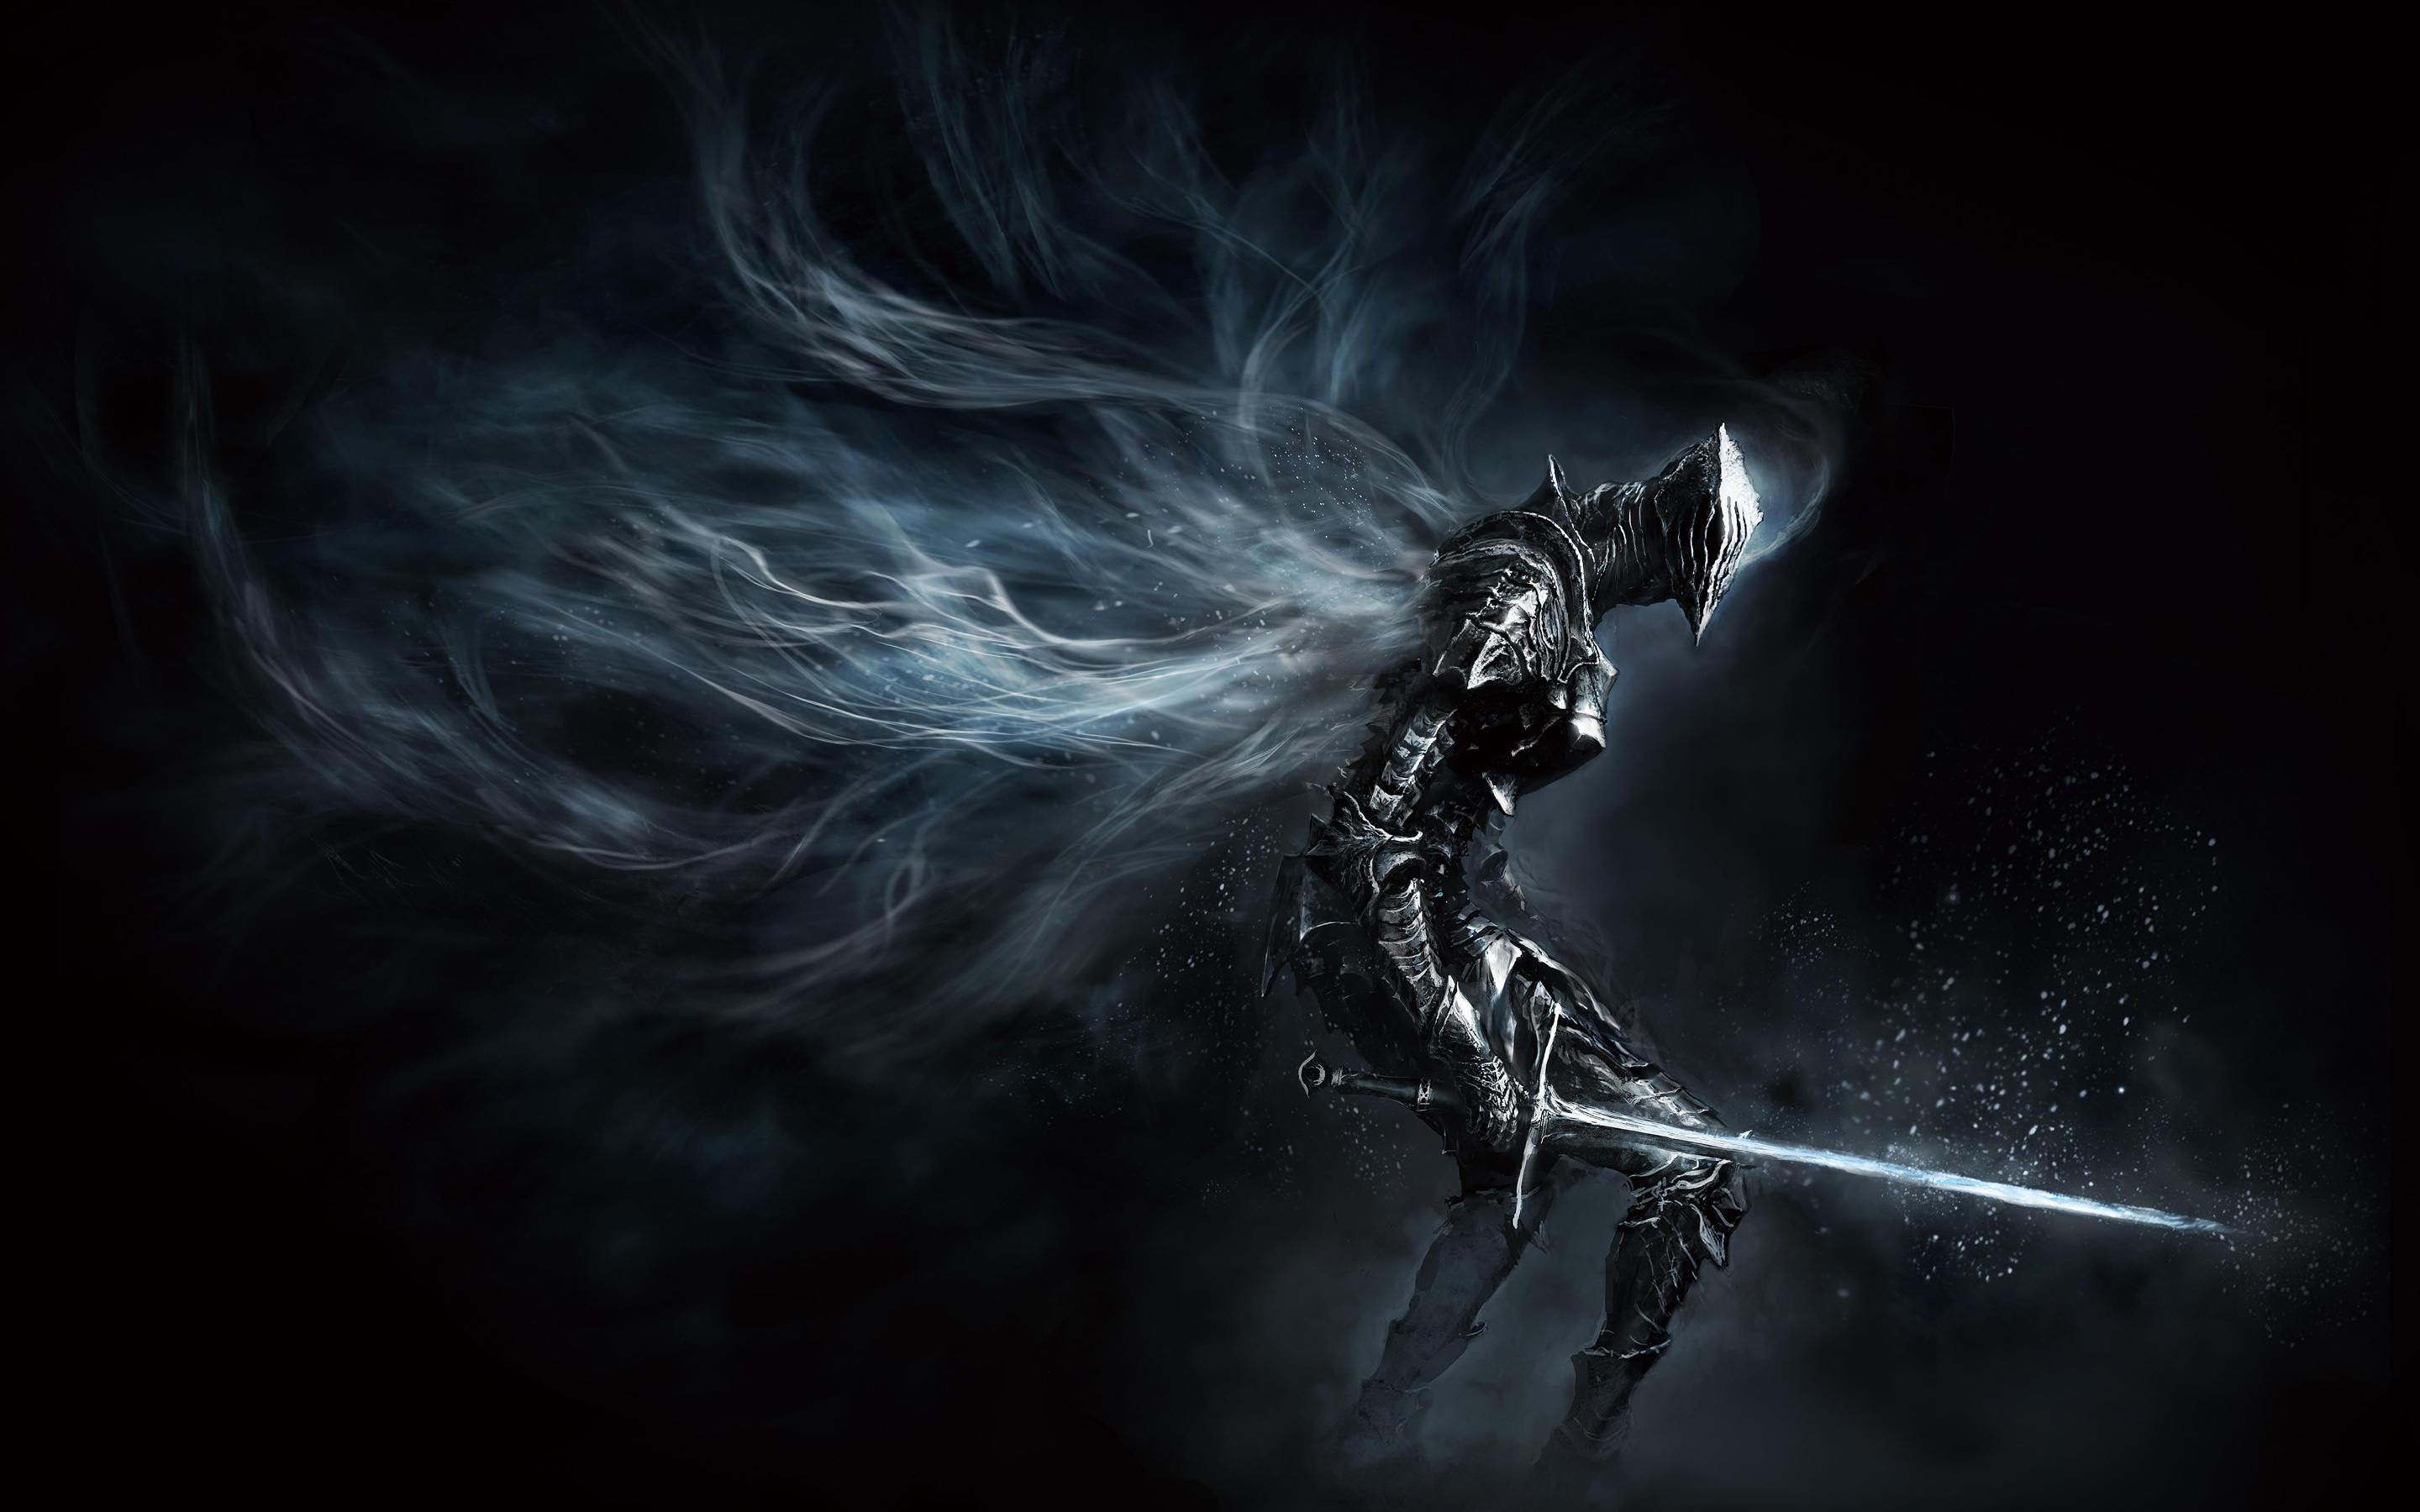 dark souls 3 artwork wallpapers in jpg format for free download